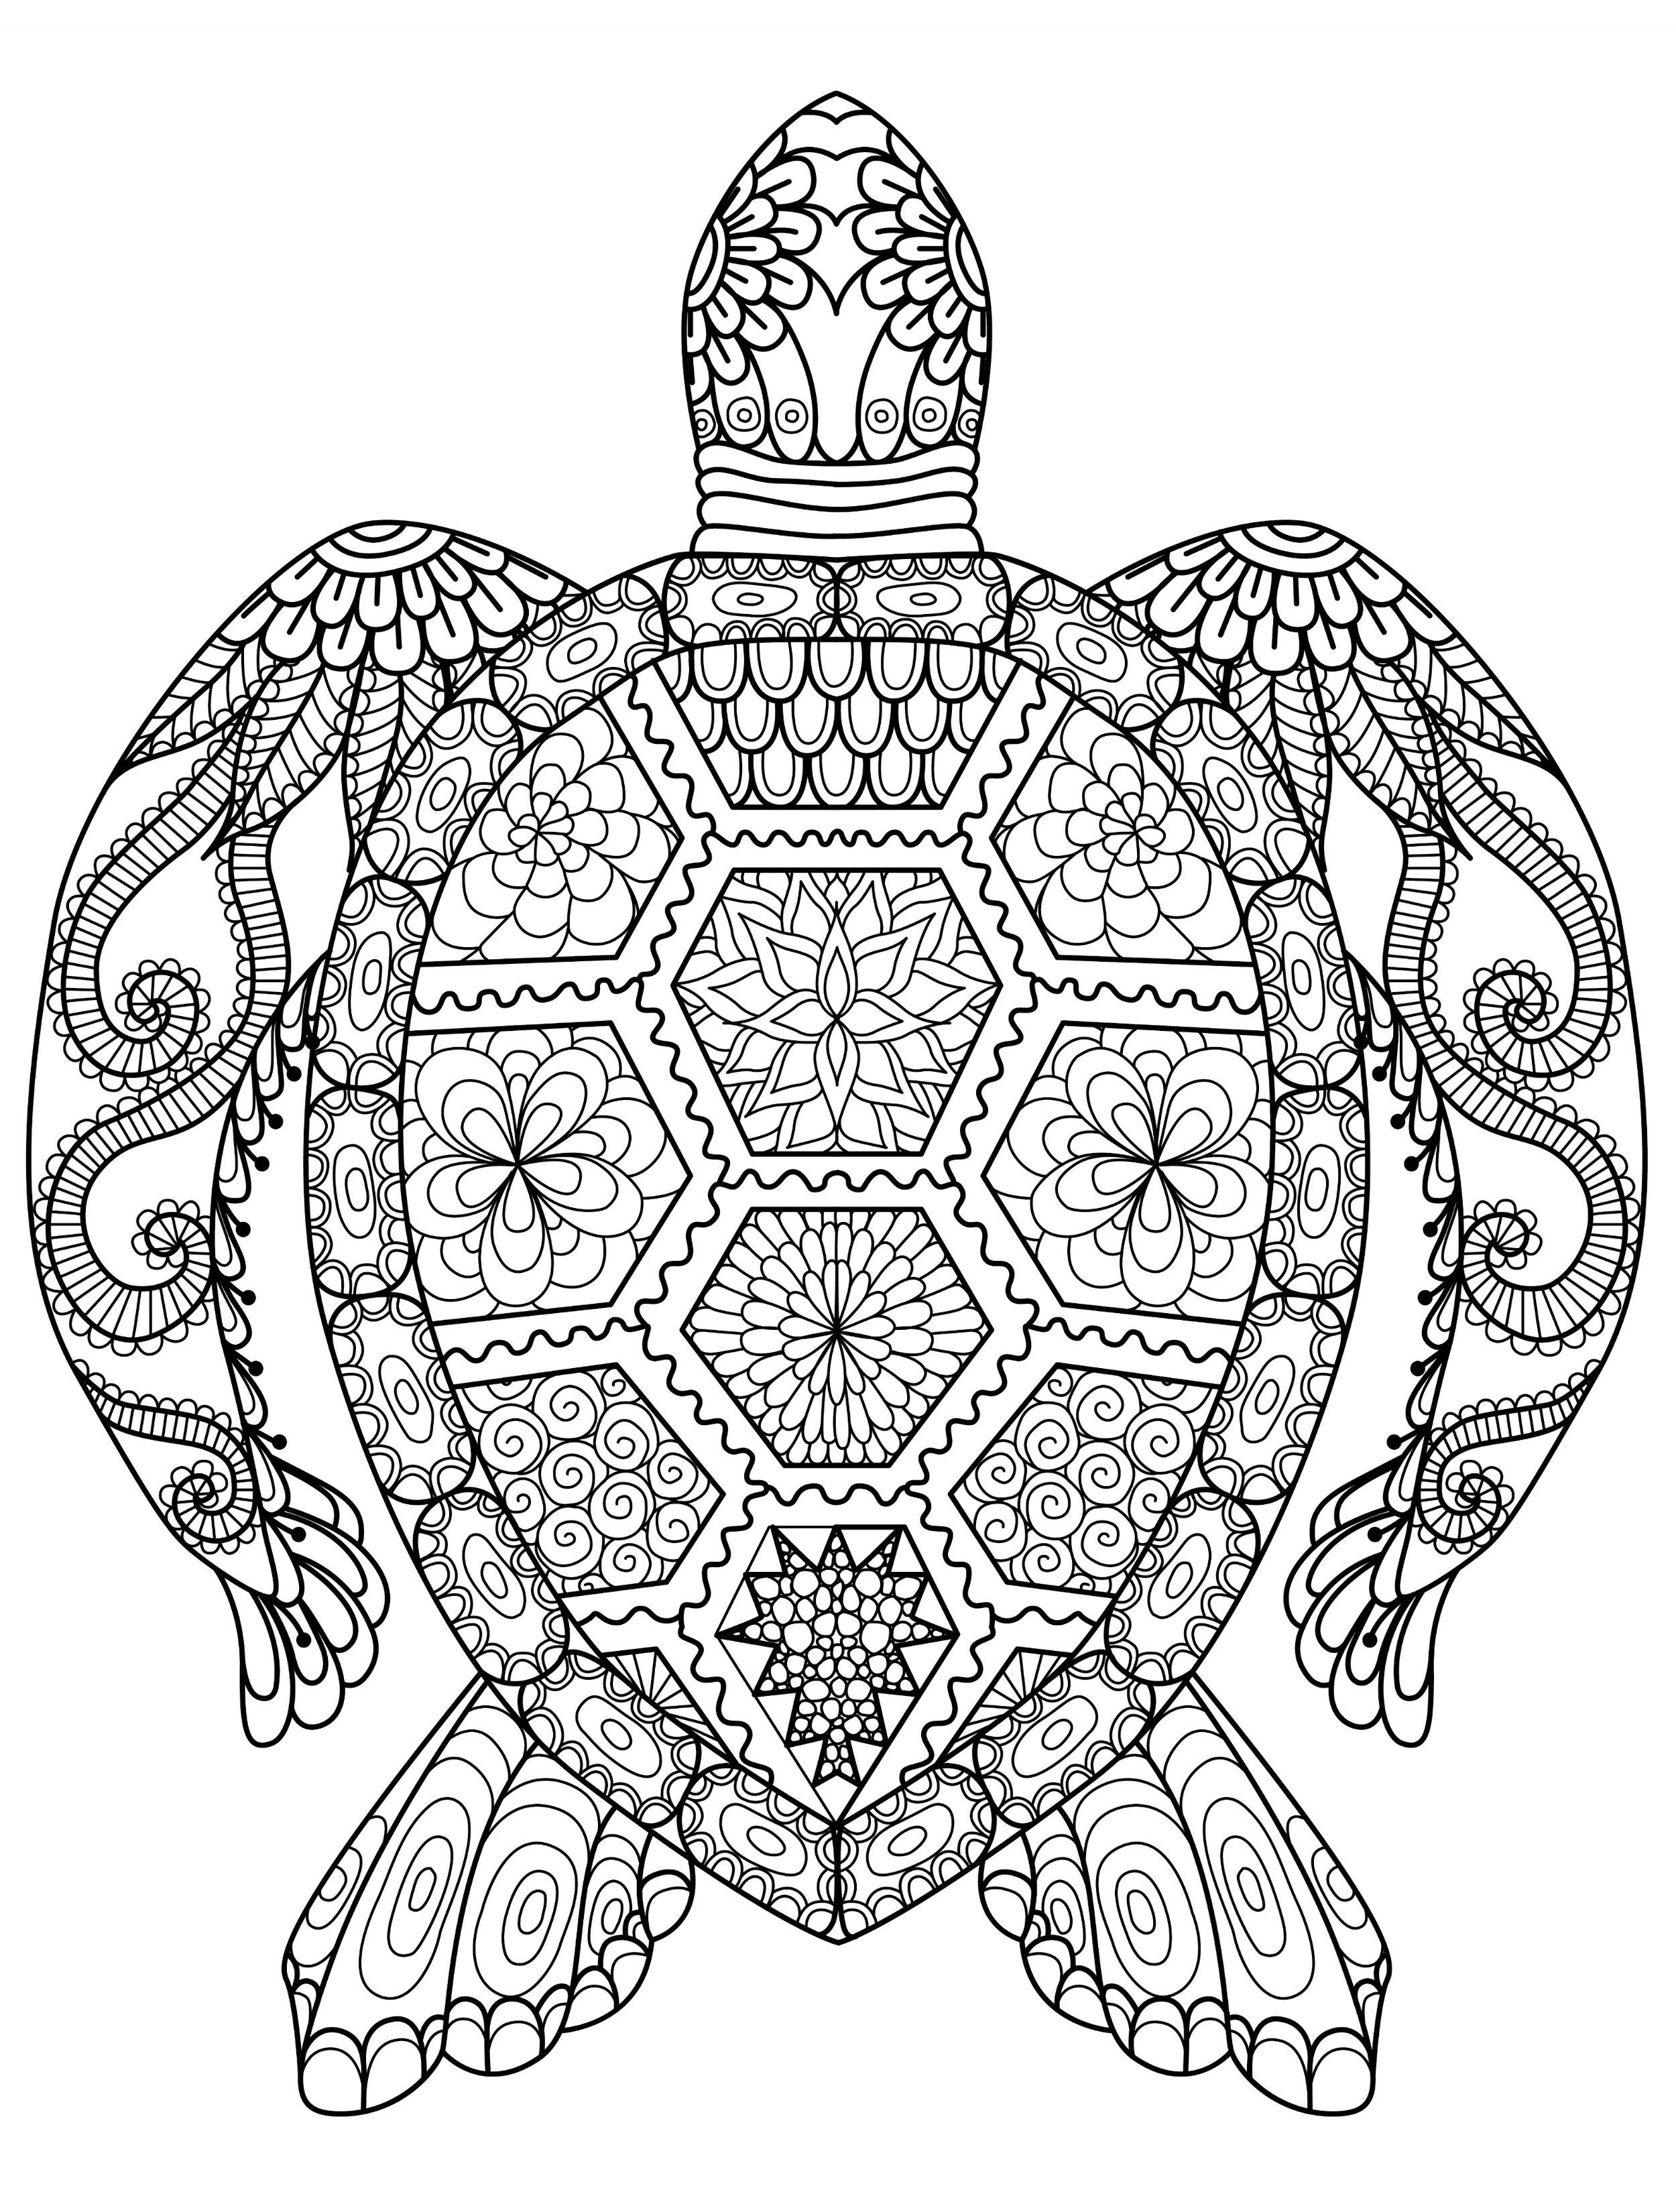 mandala coloring pages pdf Download-20 Gorgeous Free Printable Adult Coloring Pages More 12-r